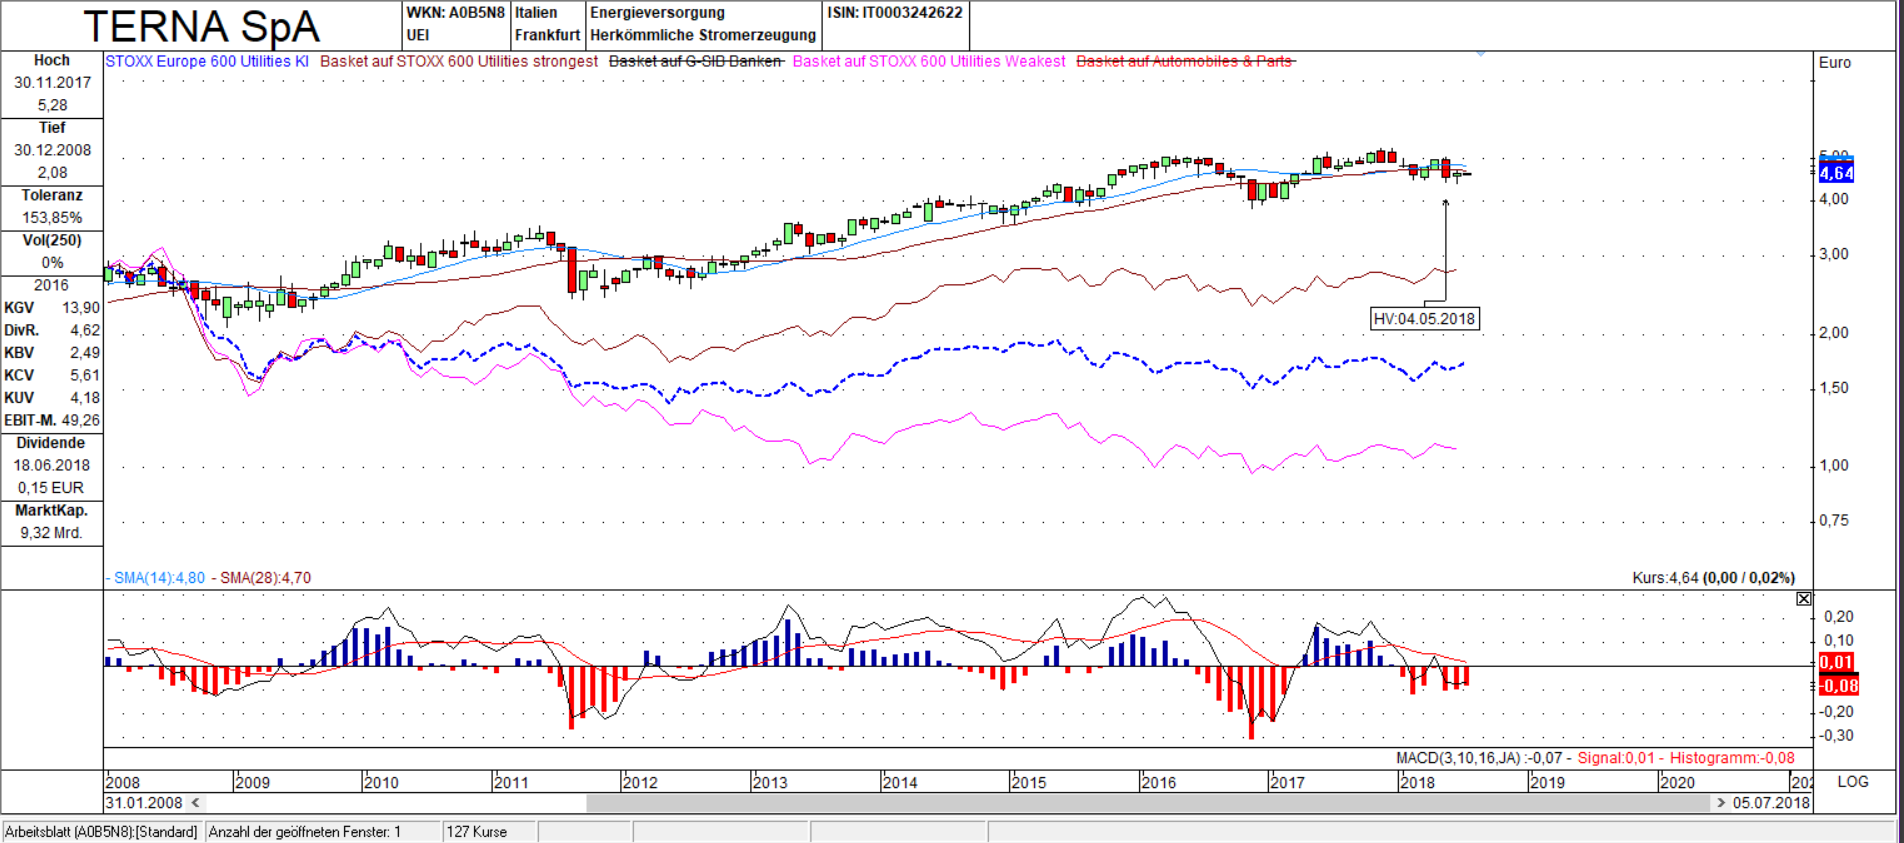 Terna SpA vs. STOXX 600 Utilities Kurs Index Candle Monats Chart